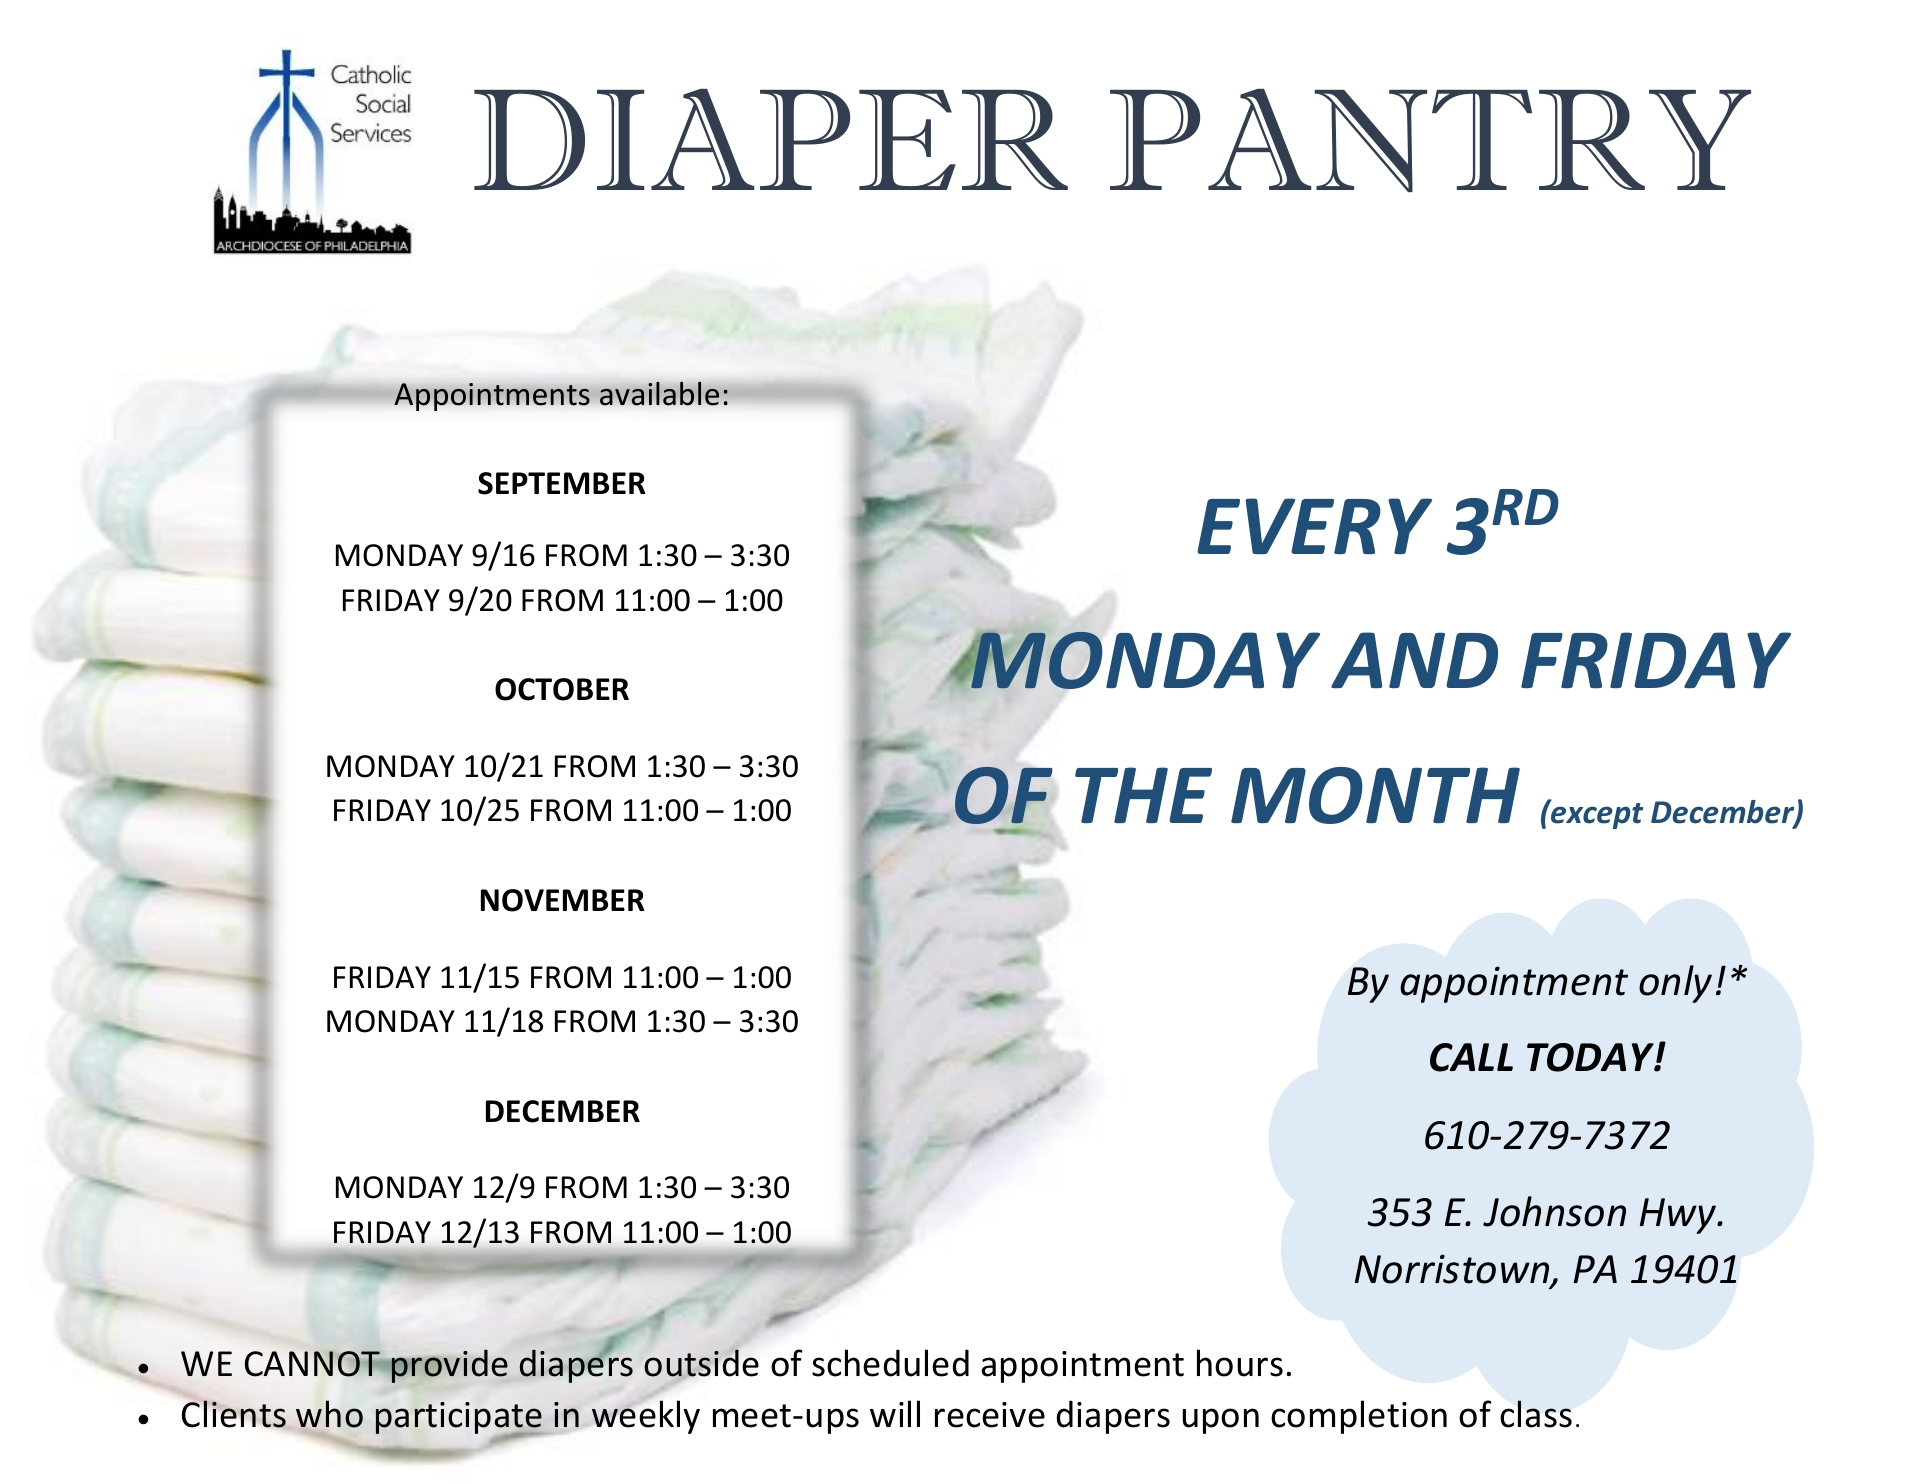 DIAPER PANTRY  NORRISTOWN MONTGOMERY COUNTY